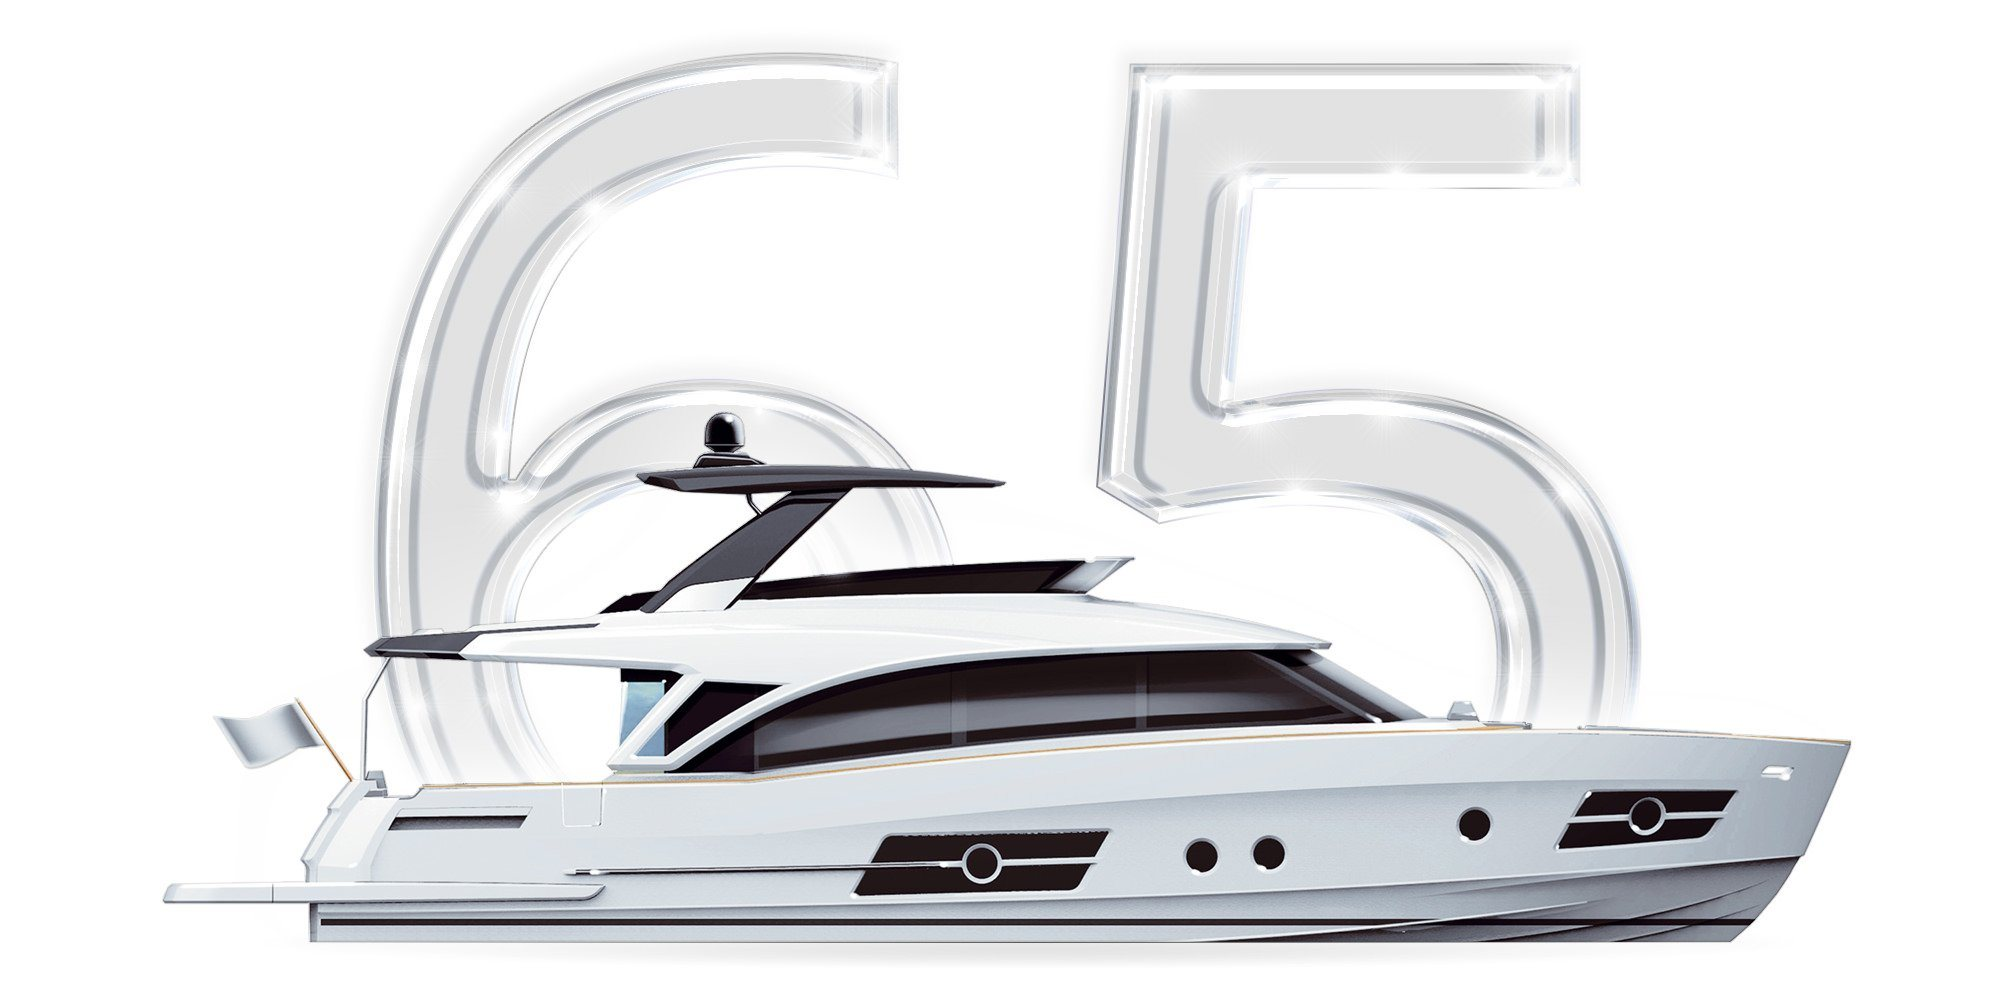 You see a Thumbnail with the number 65 and a graphically represented Yacht of the Greenline Ocean Class 65. A Slider over the thumbnail shows the following information about the Greenline 65OC / Luxury Yachts: Length overall: 20,80m Beam overall: 5,45m Base Price: 1.875.000,00€